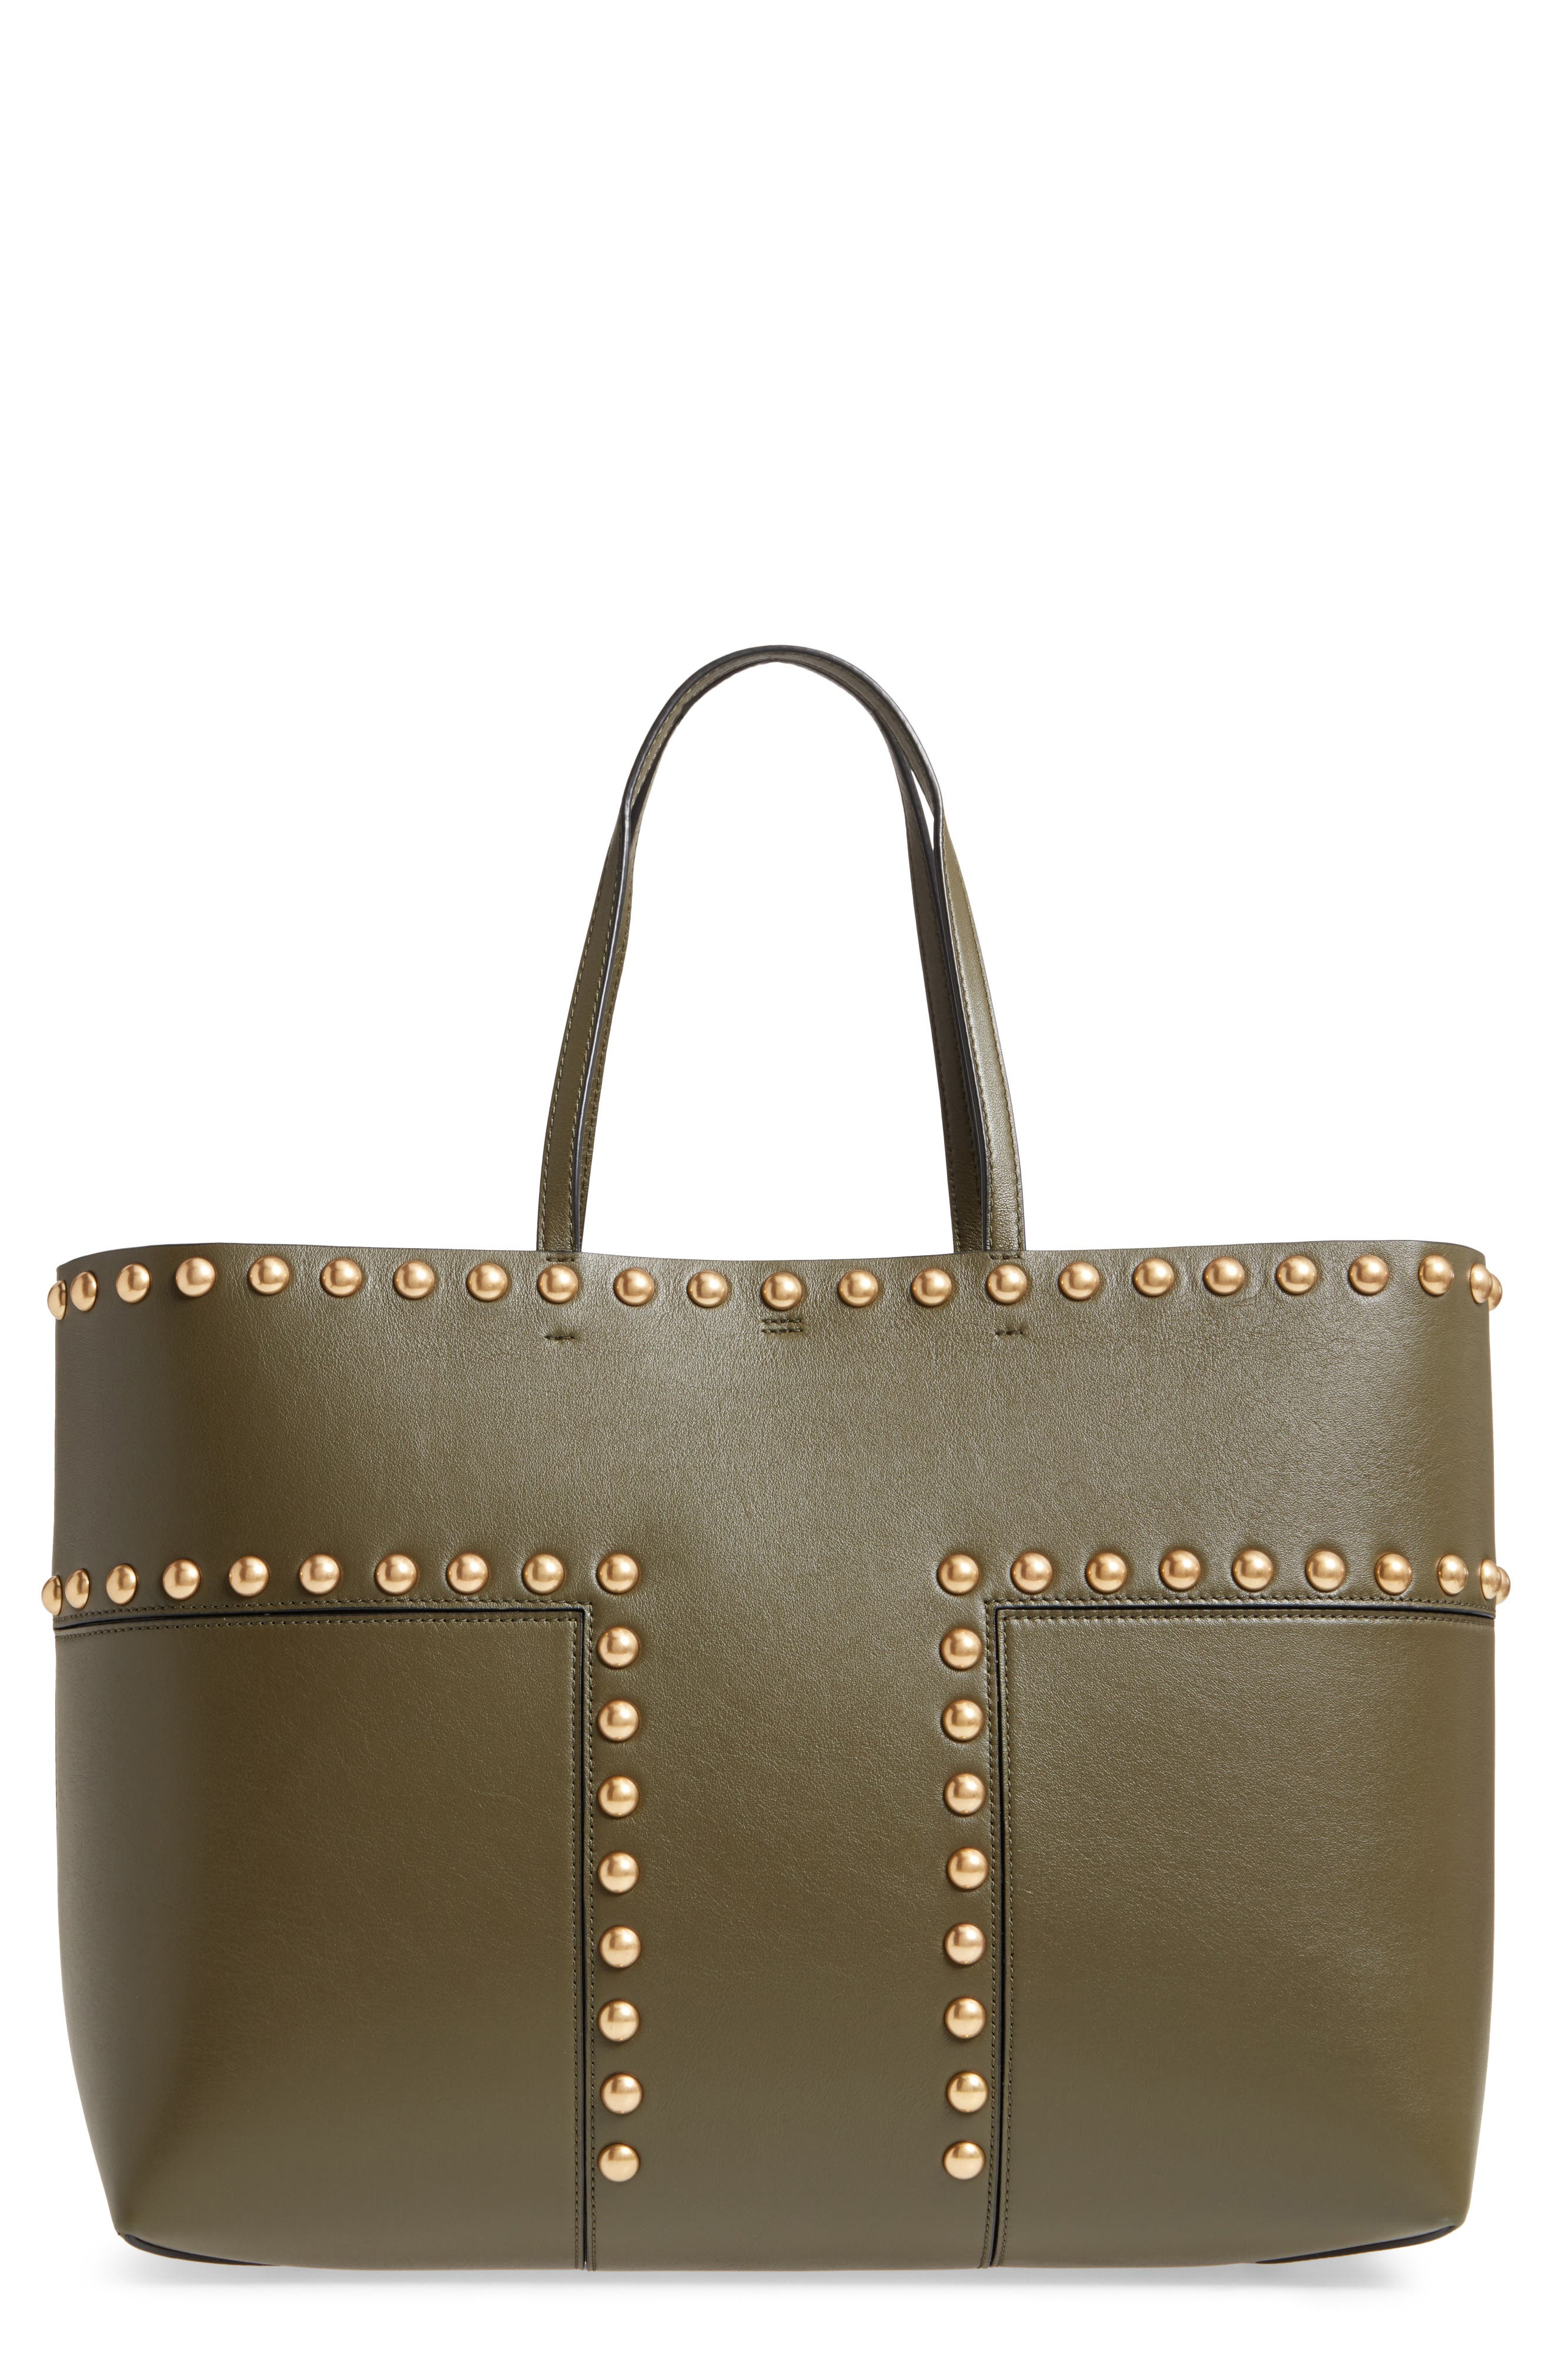 Tory Burch Block-T Studded Leather Tote